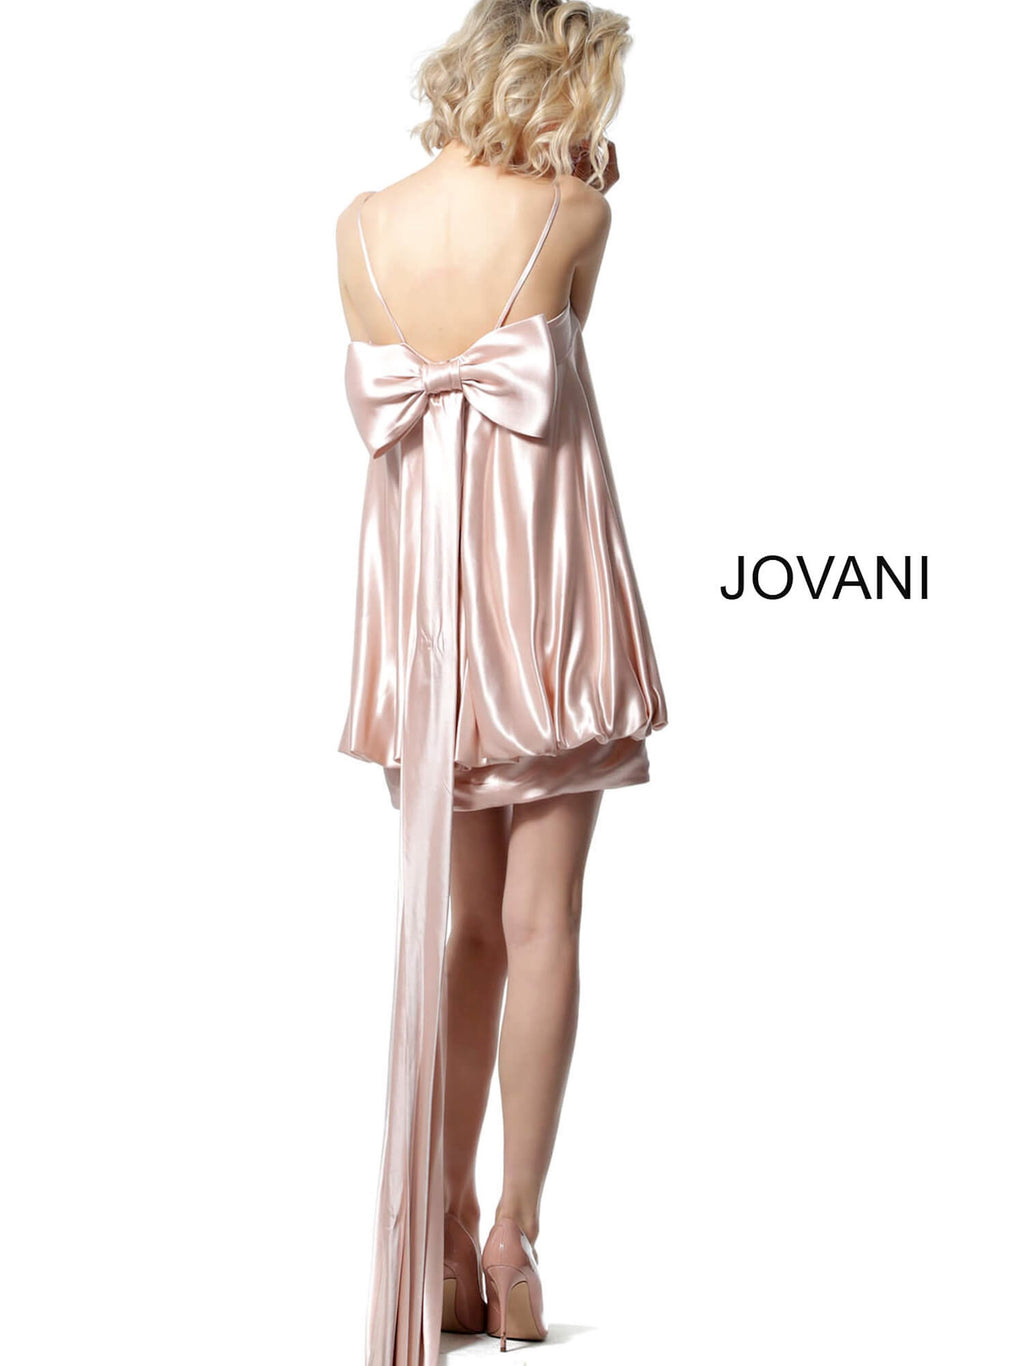 JOVANI 66431 Satin Baby Doll Dress